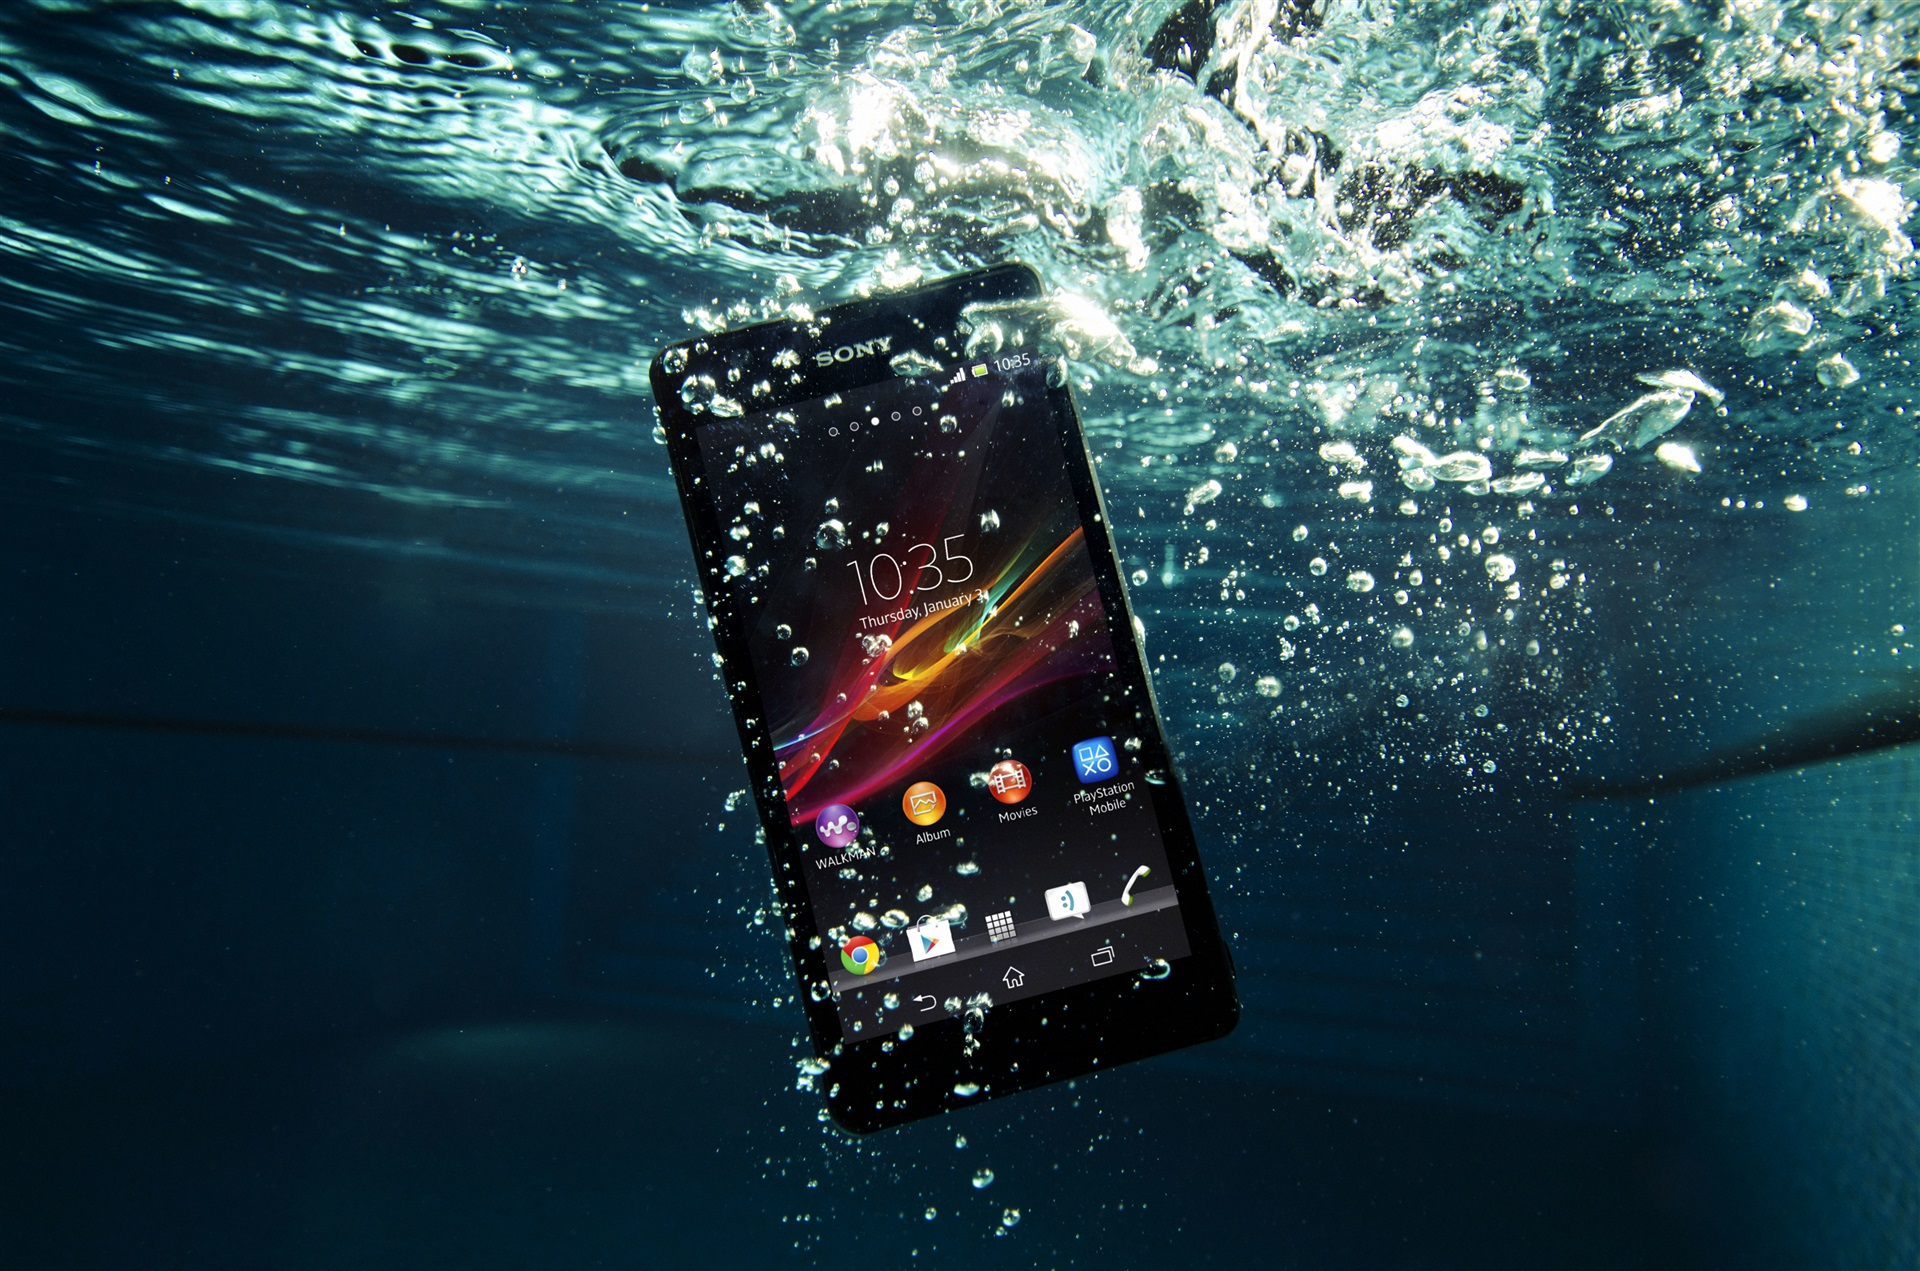 4K wallpaper   Hi tech   xperia mobile sony waterproof zr 1920x1271